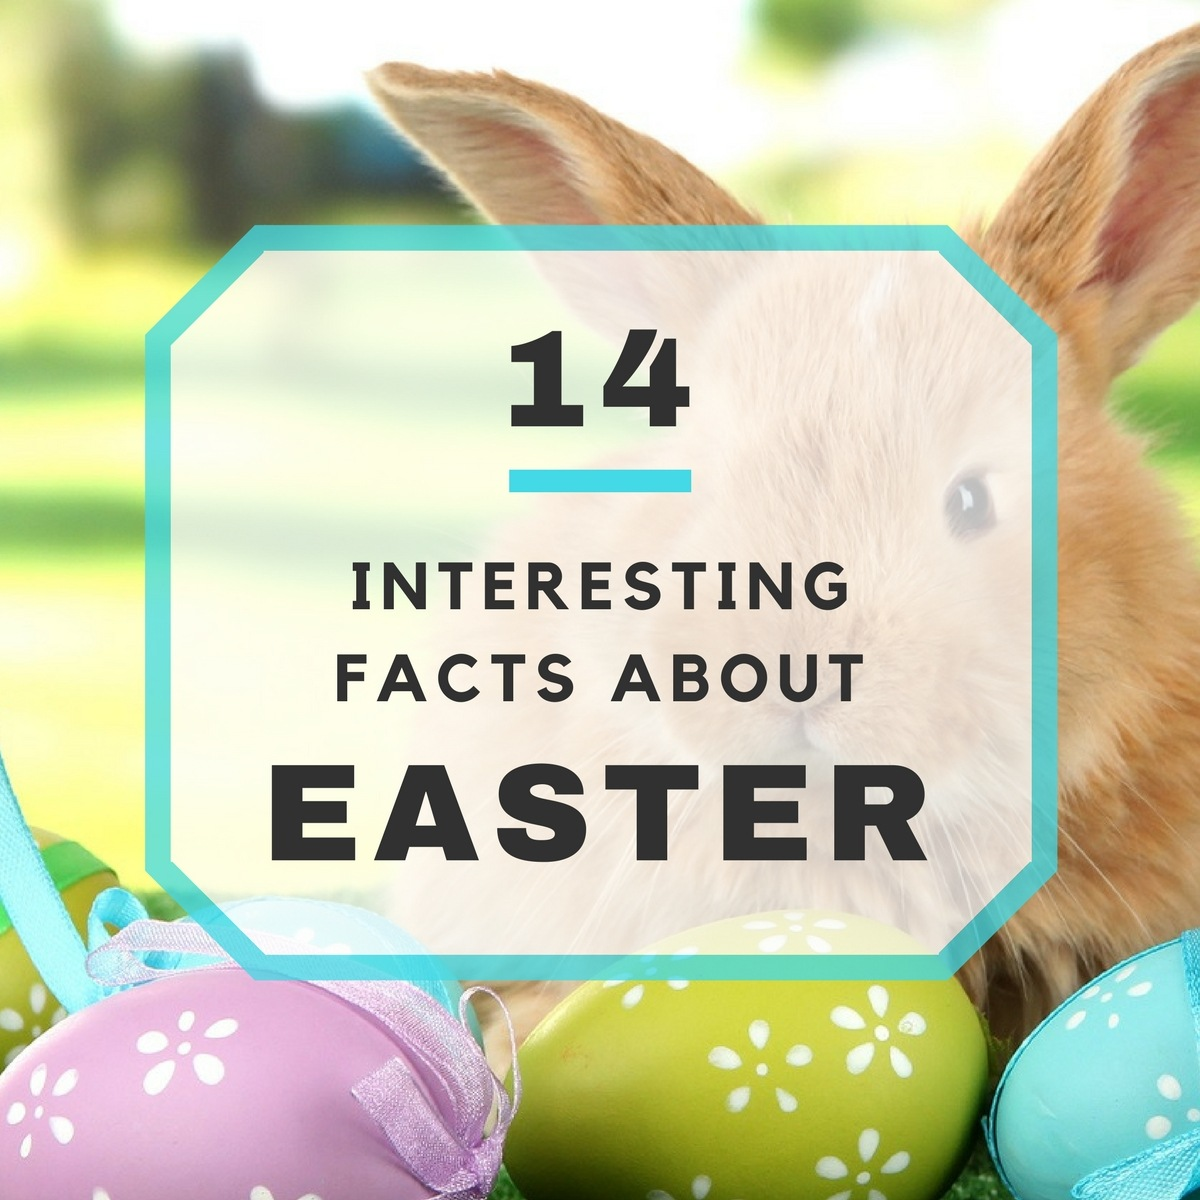 Cool facts about easter eggs the best fact in 2018 for Easter egg fun facts